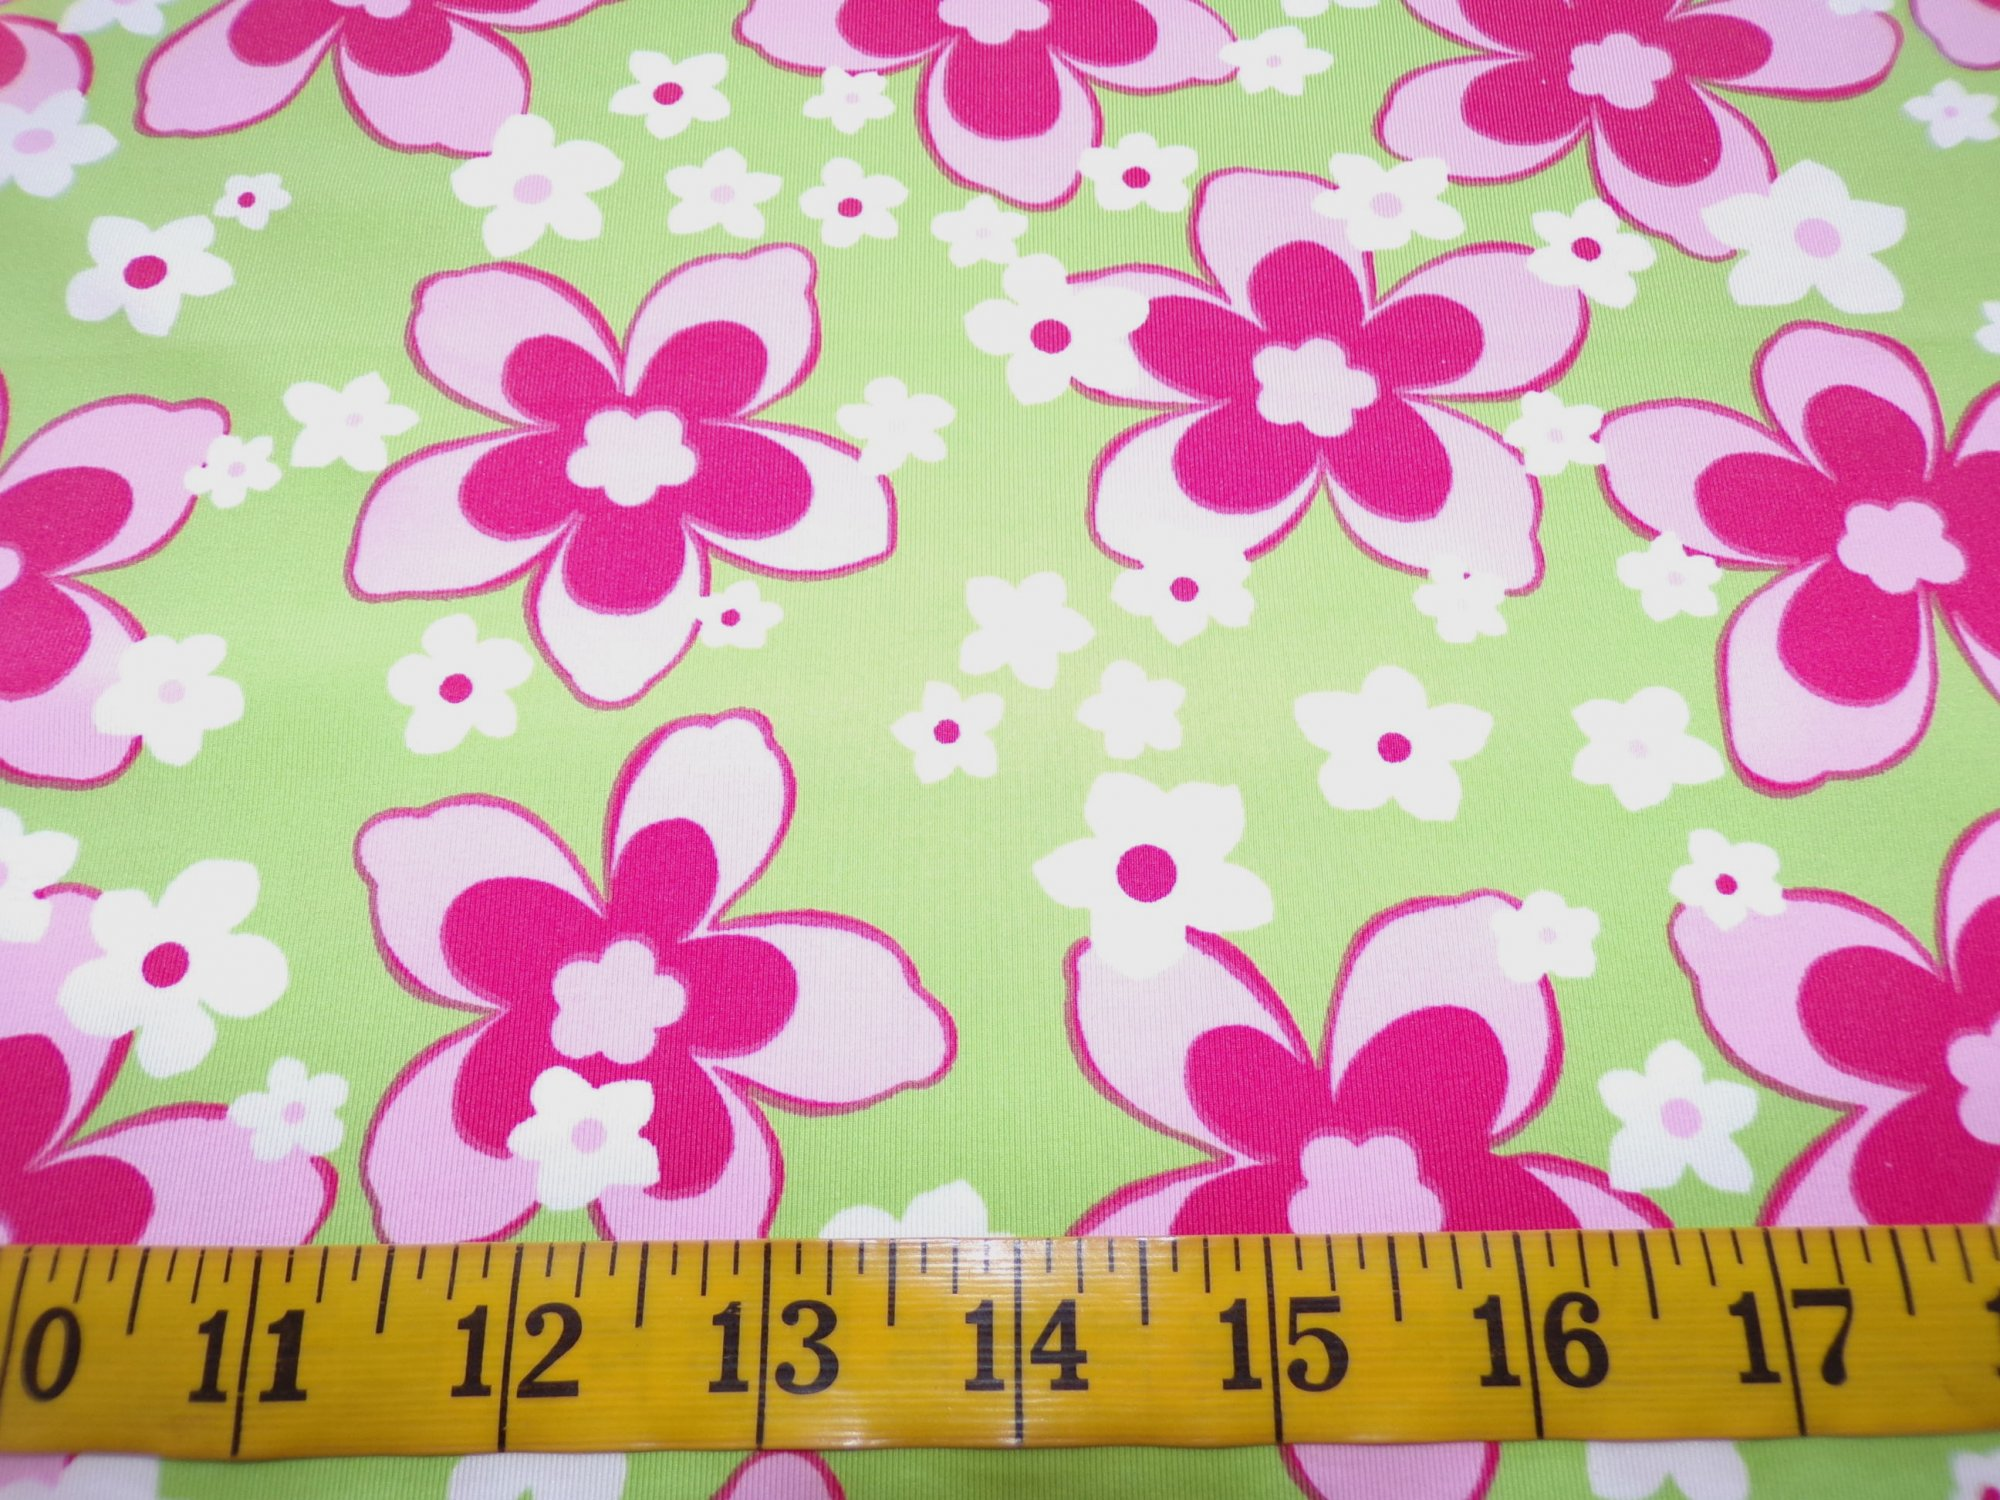 Swimwear - Light Green with Pink and White Flowers